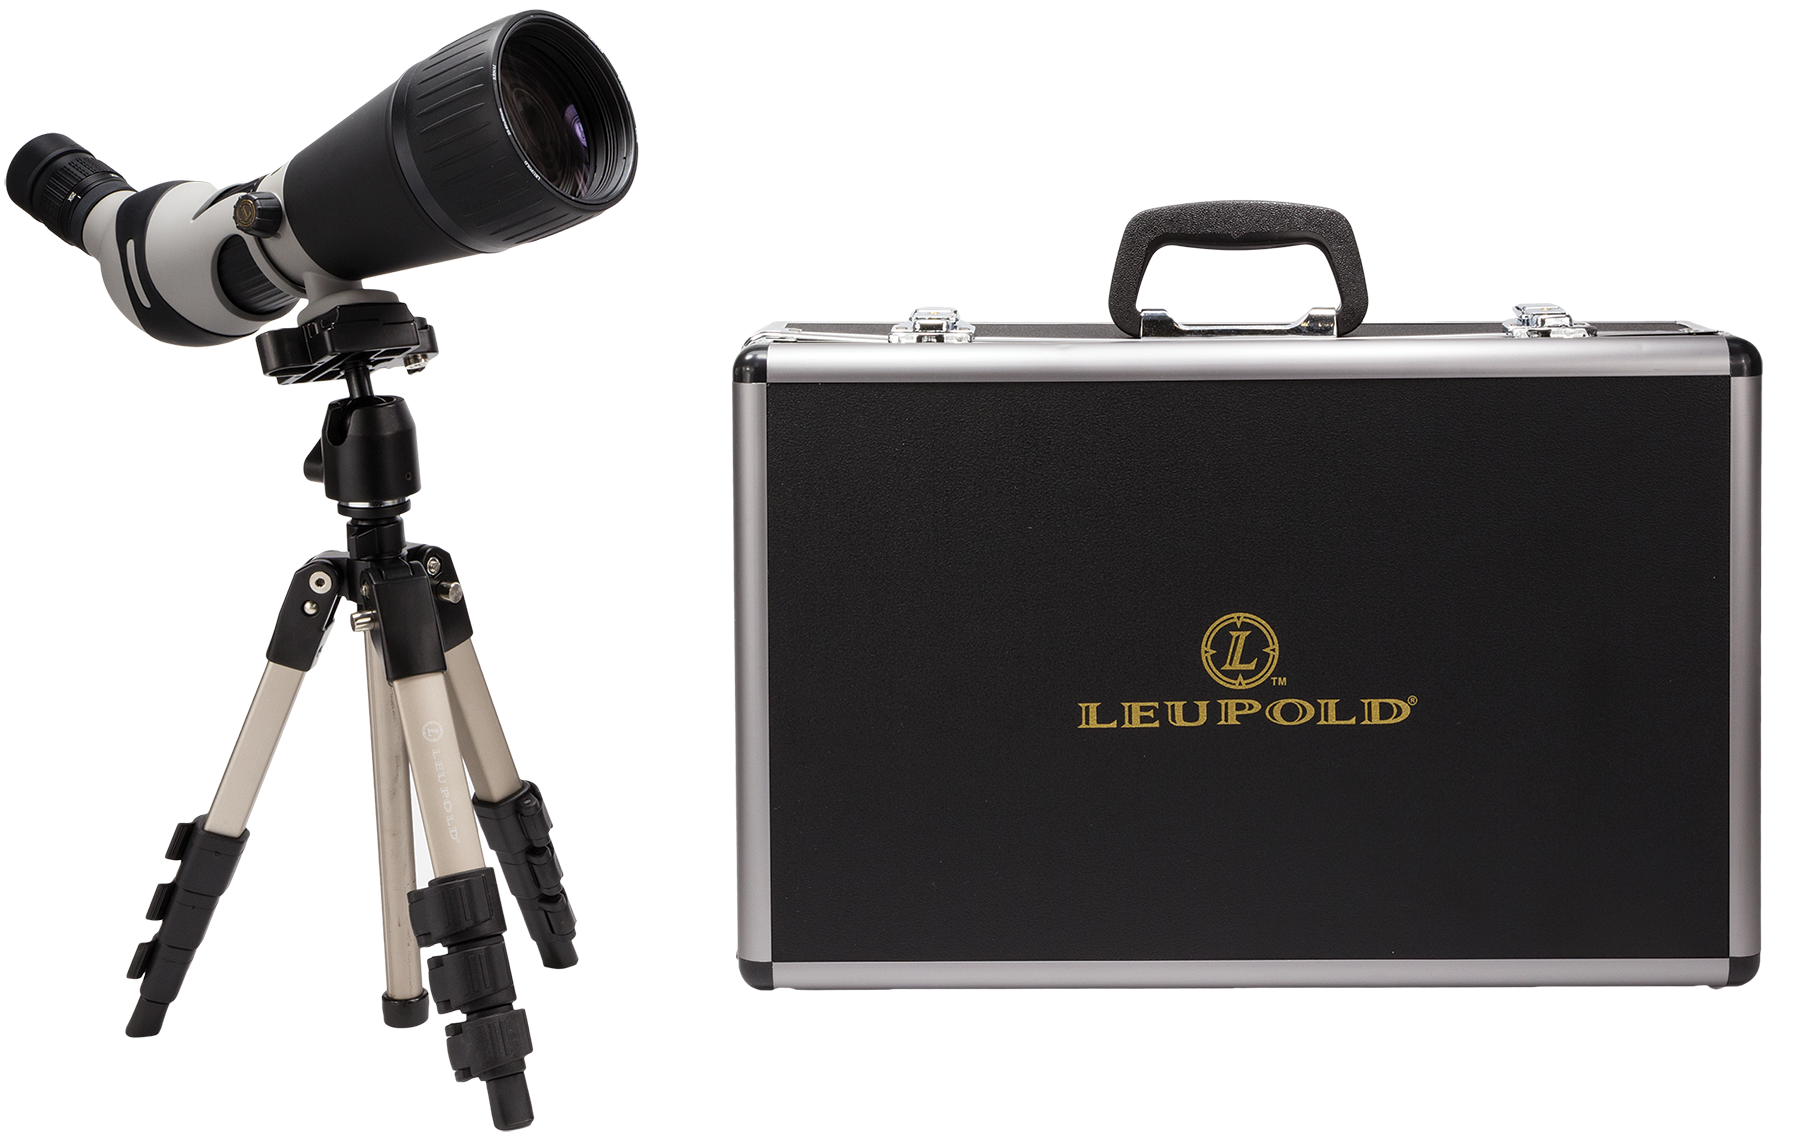 Leupold 64310  25-60x 80mm 94-52 ft @ 1000 yds 17.4-17.9mm Black/Gray